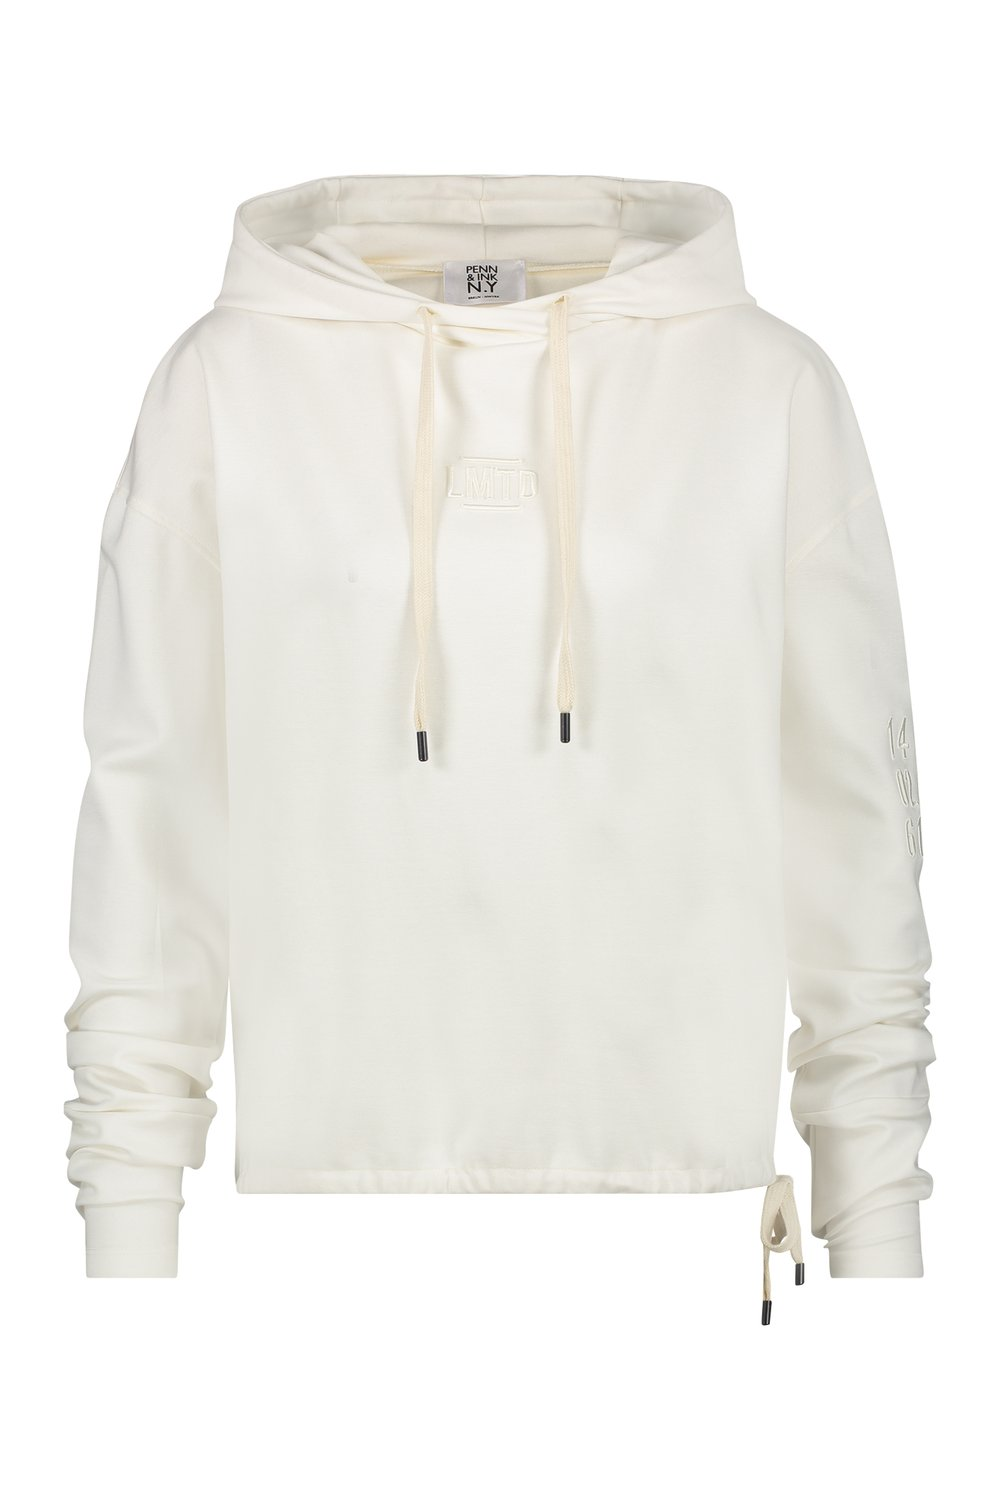 Witte sweater dames met capuchon Penn & Ink - W19T299LTD